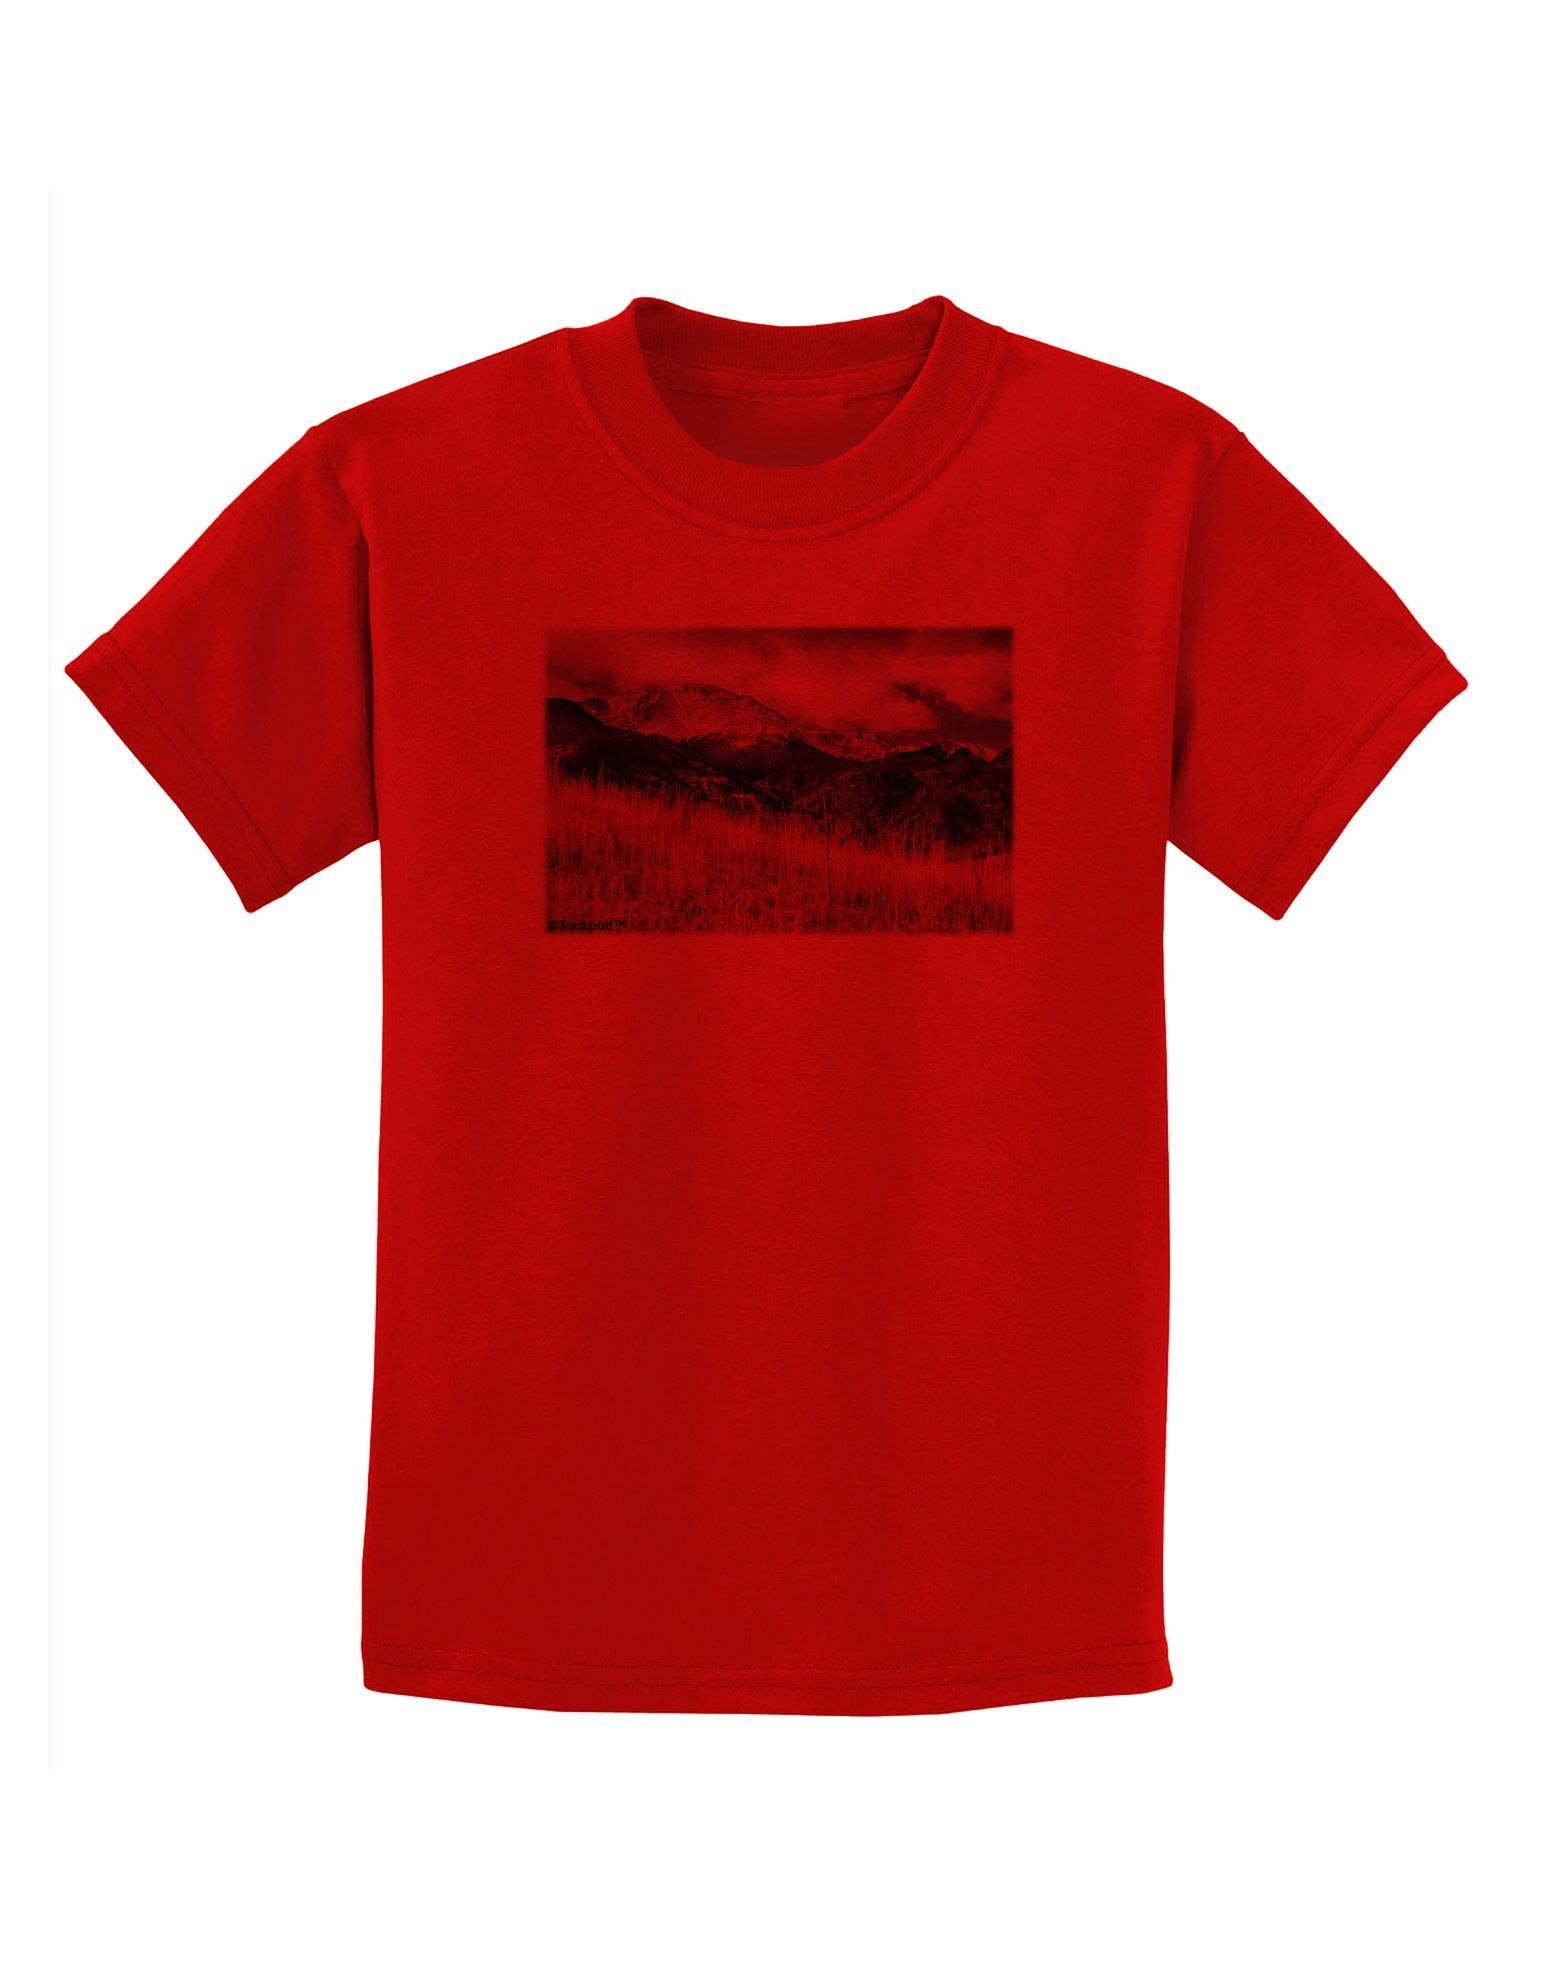 Pikes Peak CO Mountains Childrens T-Shirt by TooLoud